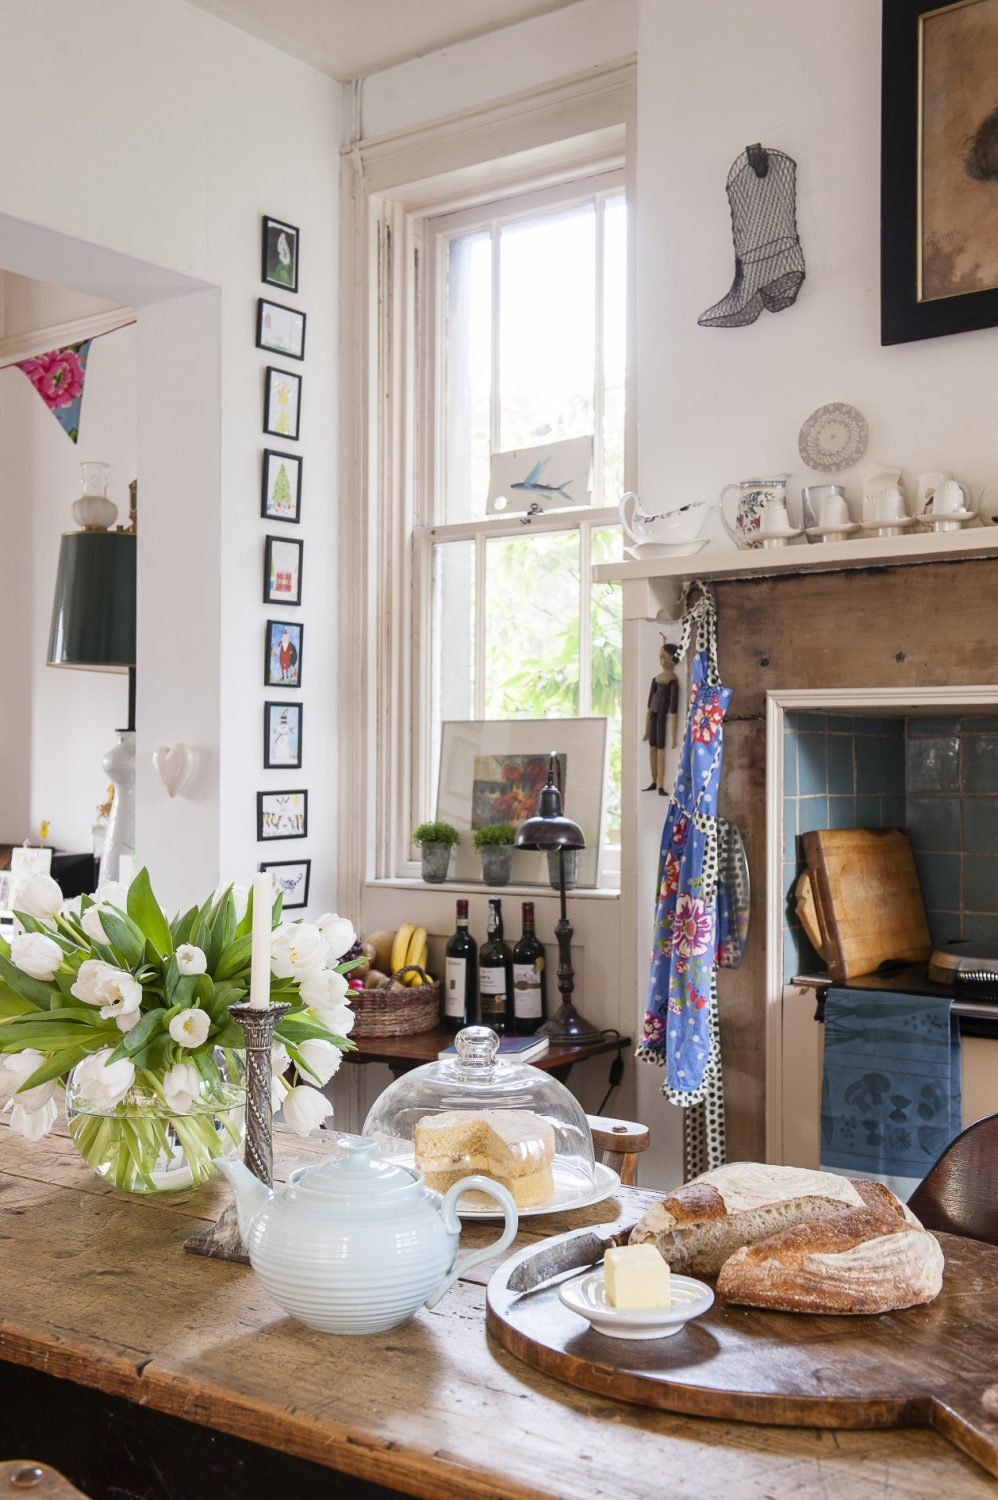 Freshly baked bread and cake make a welcoming sight on the kitchen table. Ceramics by Kate Schuricht, Sue Binns, Andre Wicks and Stuart Houghton line the mantelpiece